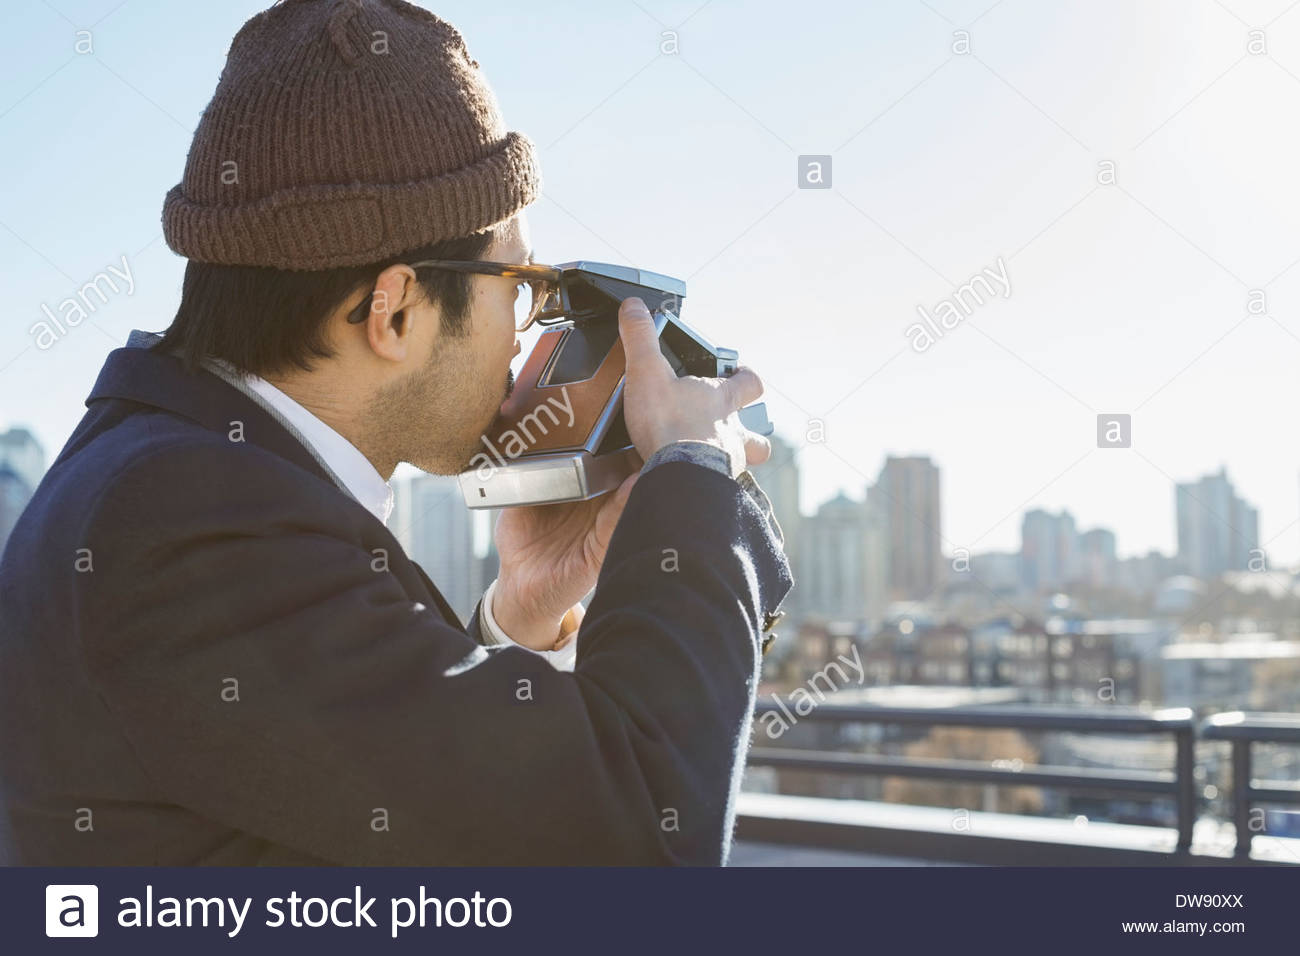 Side view of man photographing cityscape de patio Photo Stock